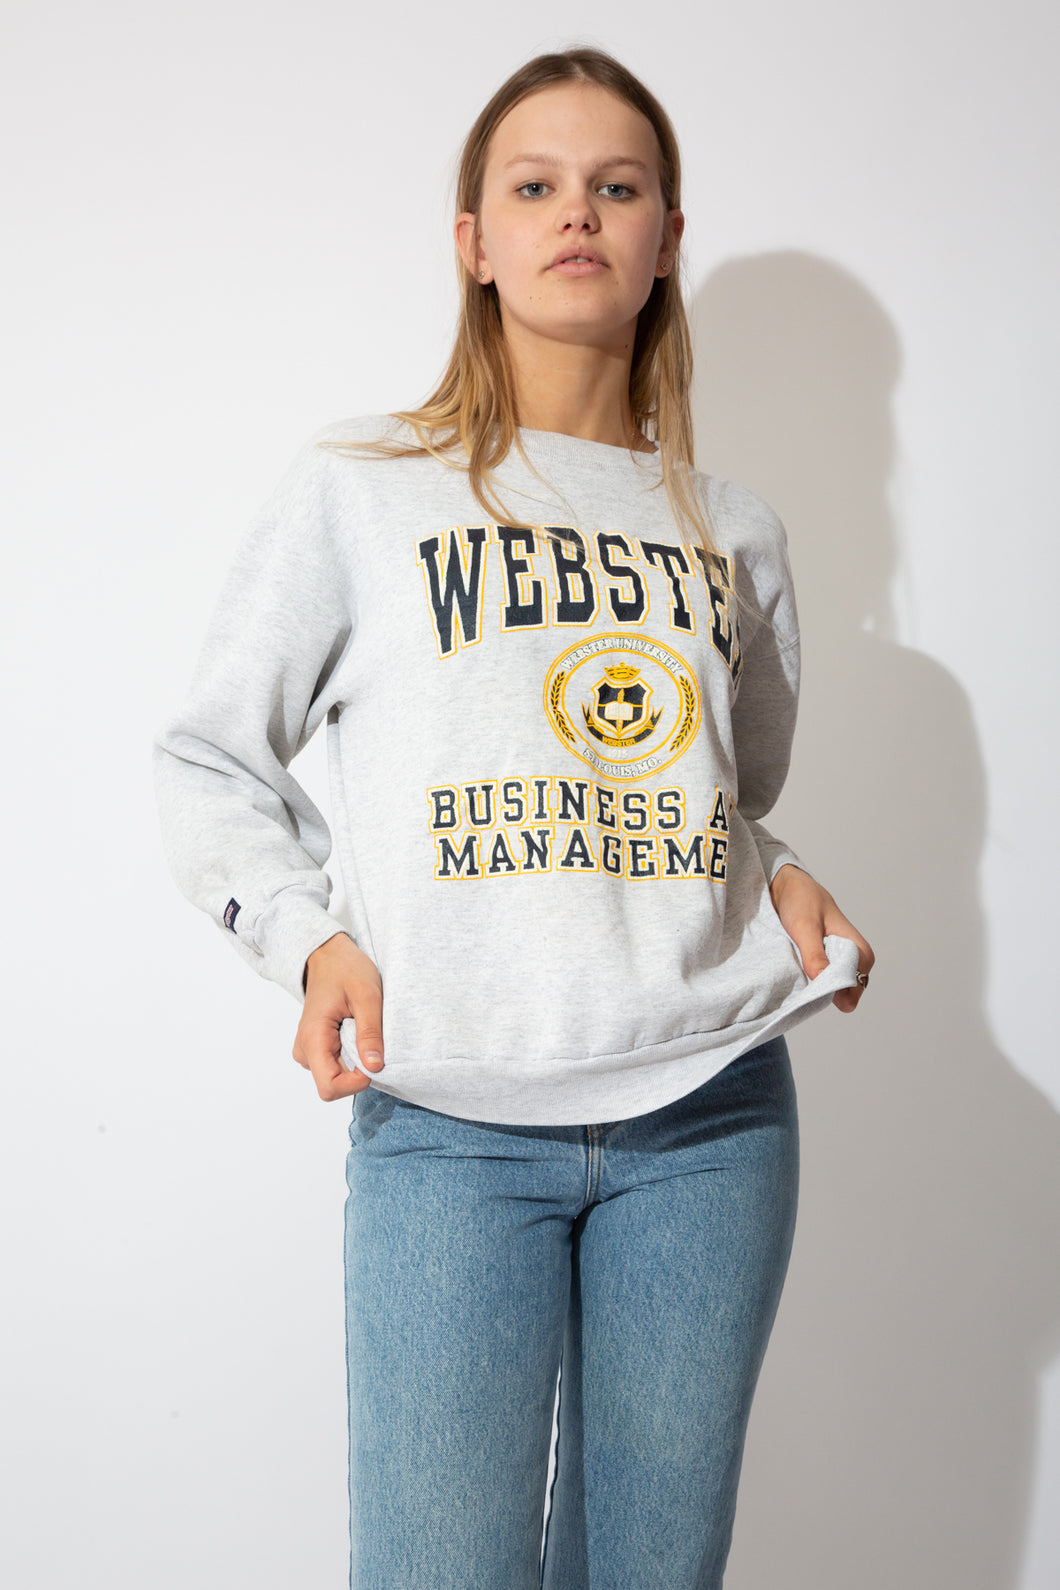 grey marl sweater with navy and yellow webster university graphic on the front